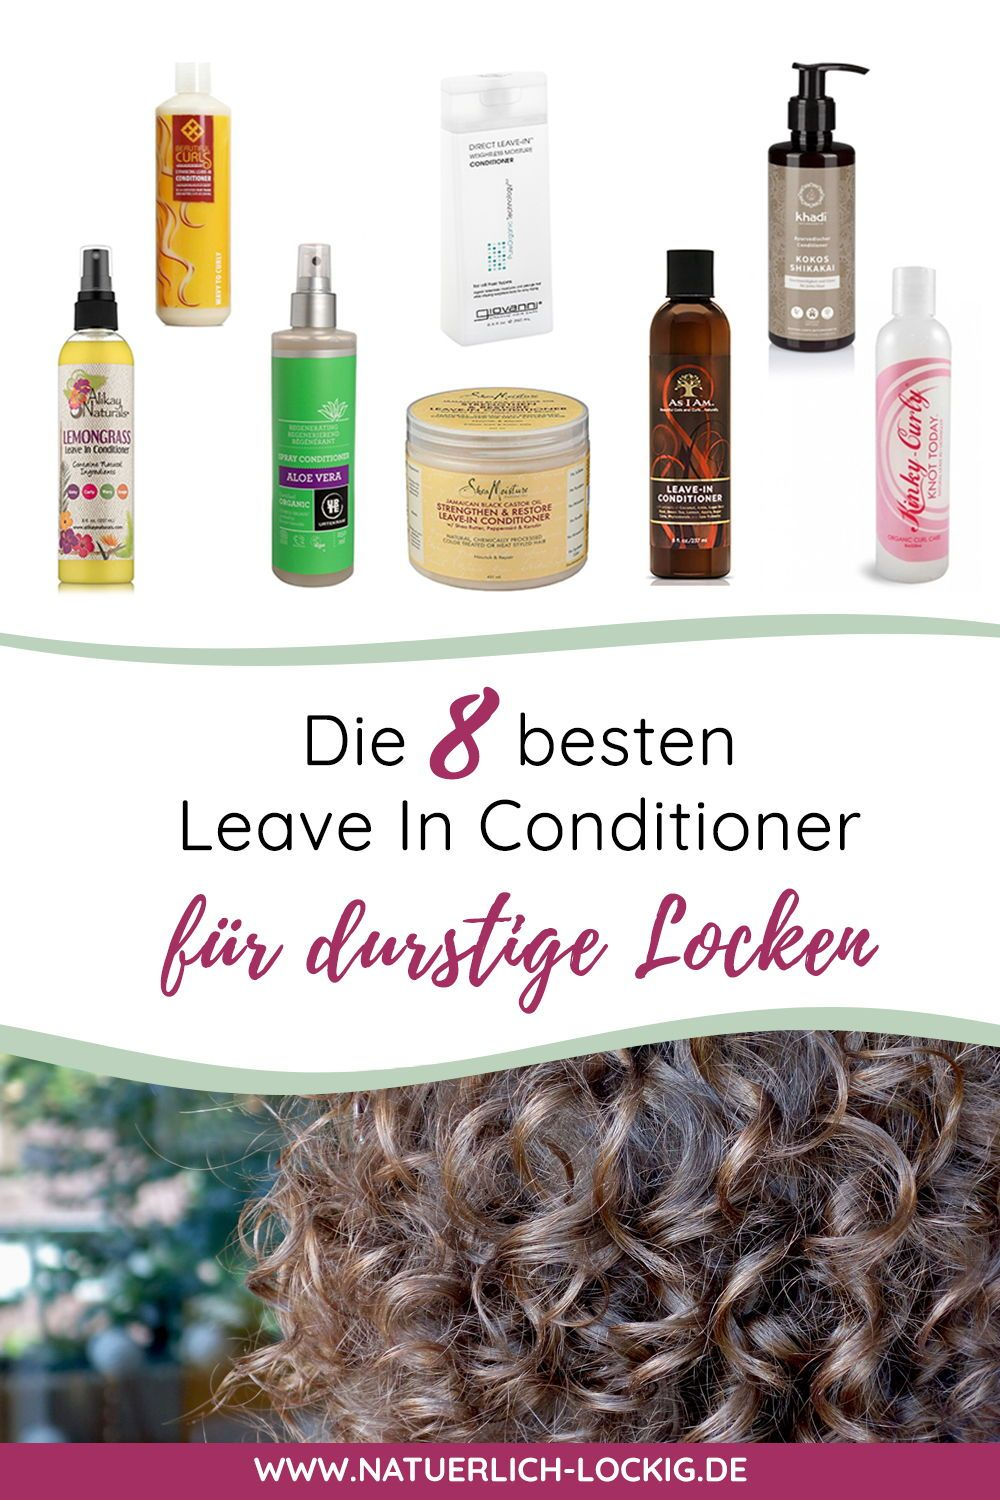 Die Besten 9 Leave In Conditioner Für Durstige Locken Naturlocken